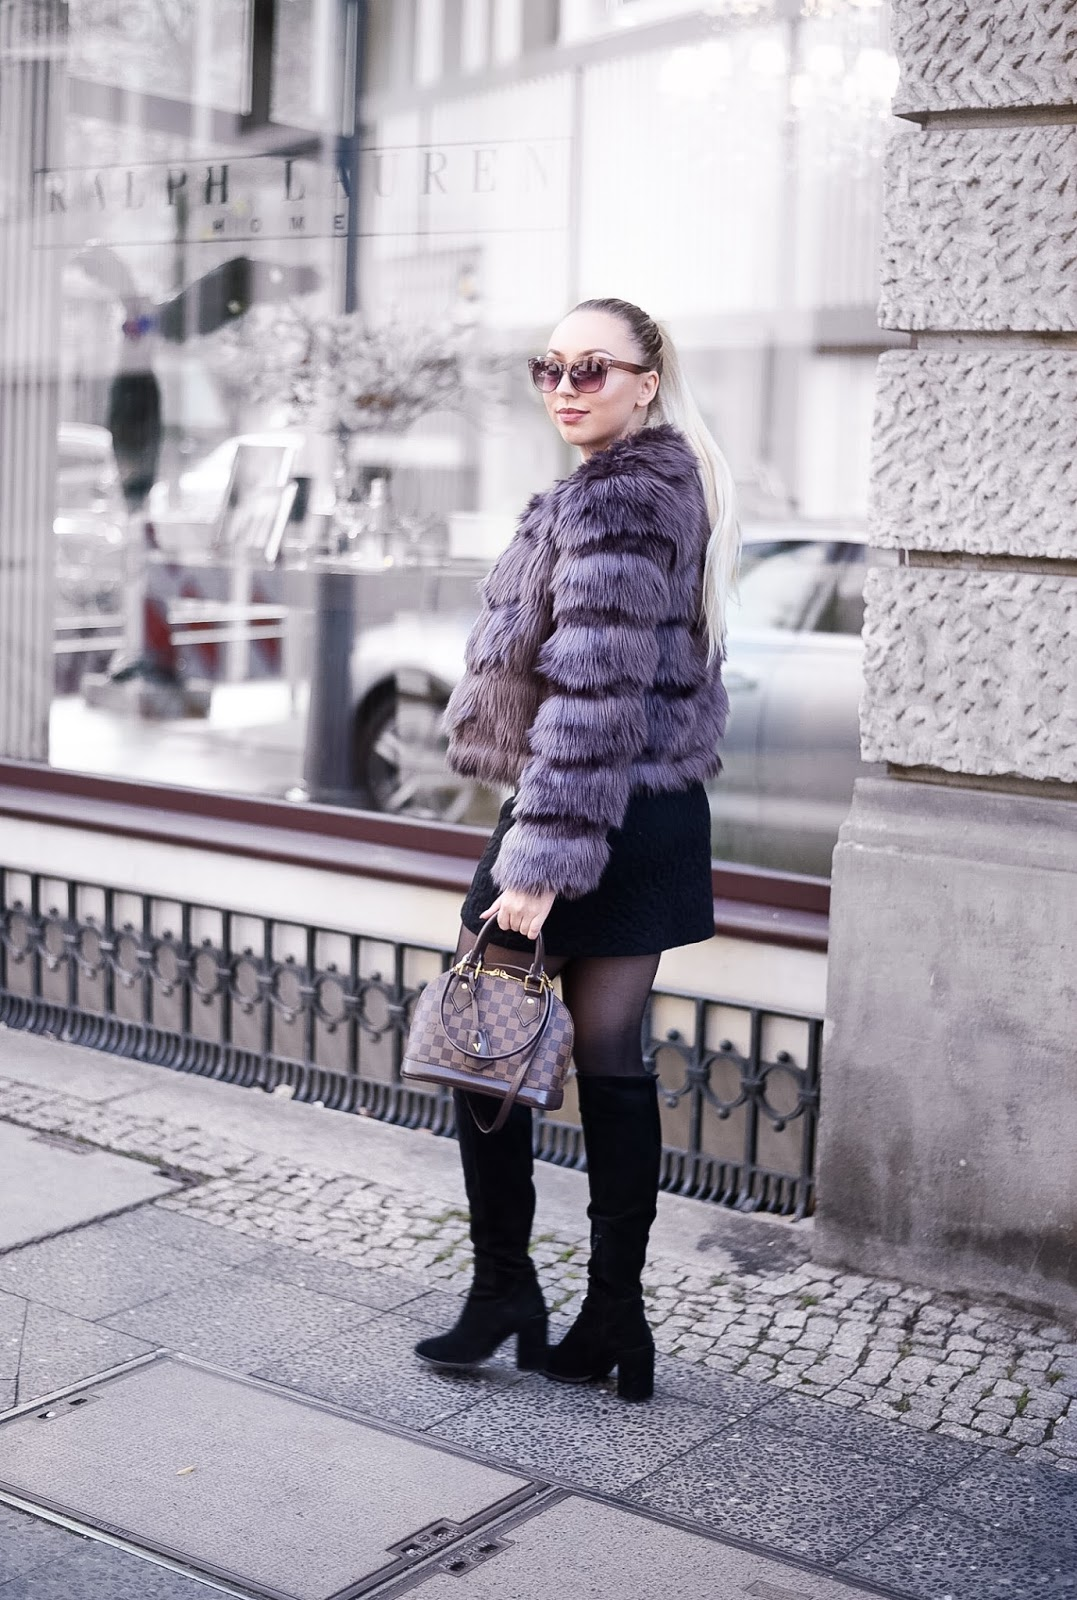 how to find your own personal style_faux fur jacket_fashionblogger streetstyle